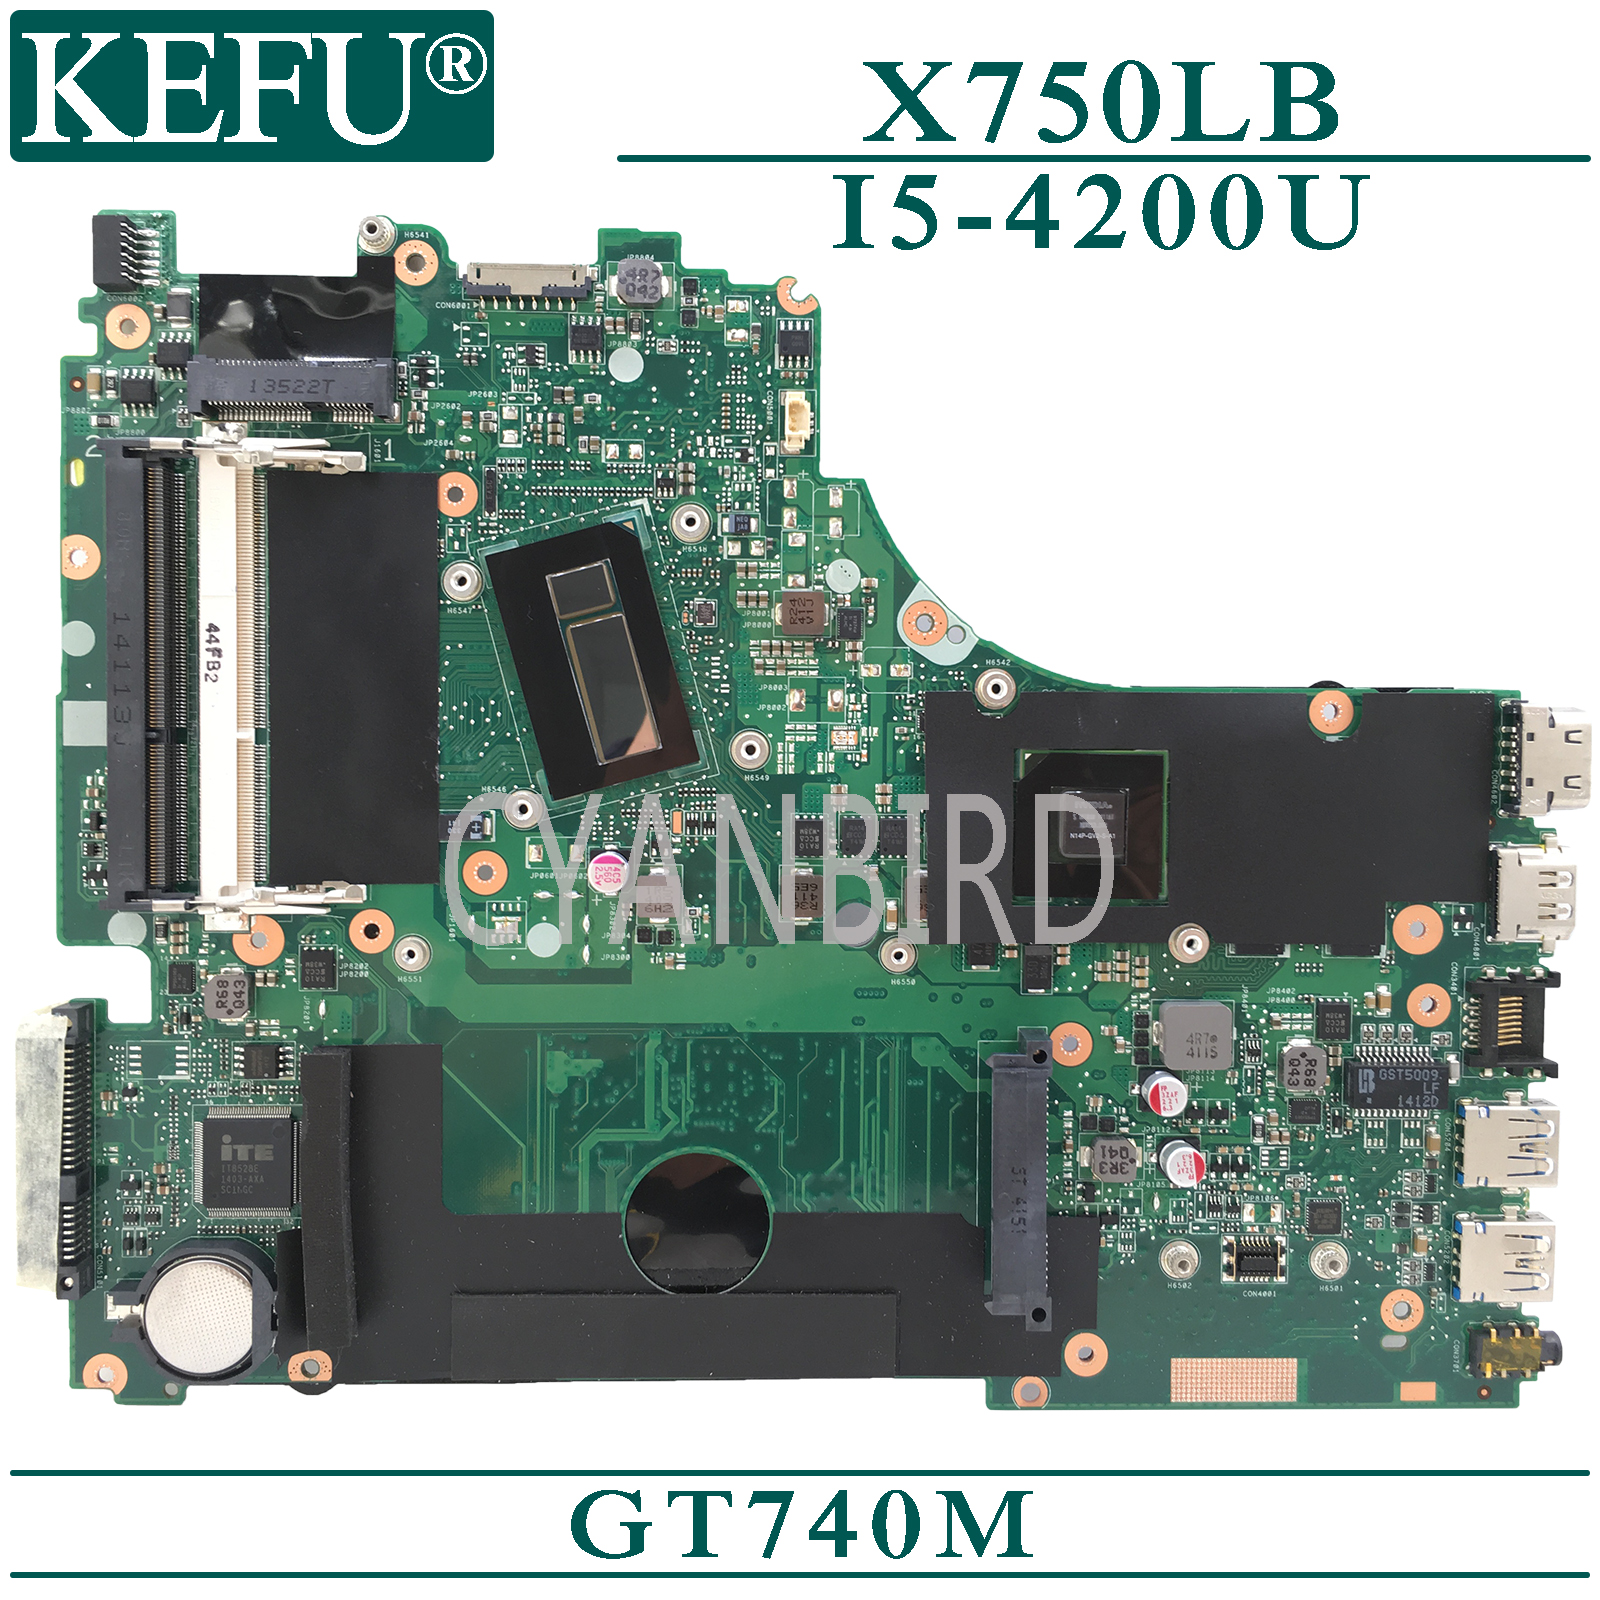 KEFU <font><b>X750LB</b></font> original mainboard for <font><b>ASUS</b></font> <font><b>X750LB</b></font> with I5-4200U GT740M Laptop motherboard image